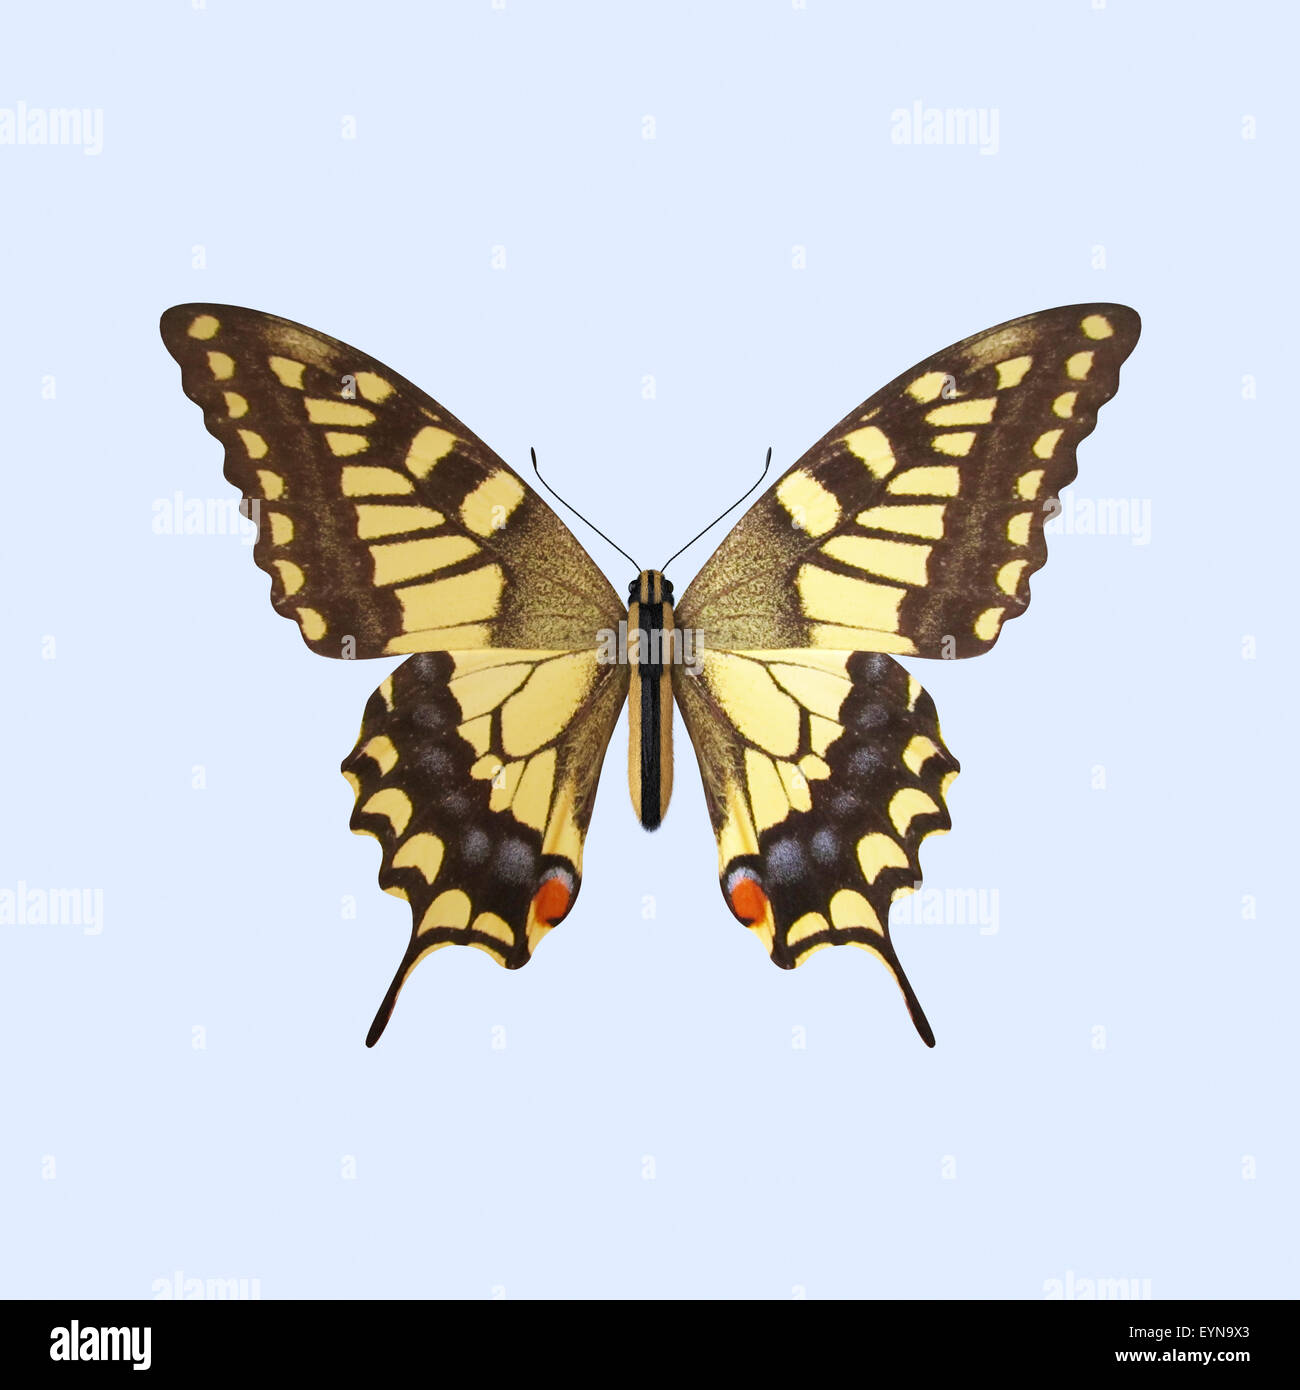 The Three-dimensional Swallowtail Butterfly, scientifically known as Papilio Machaon. Isolated on Background - Stock Image